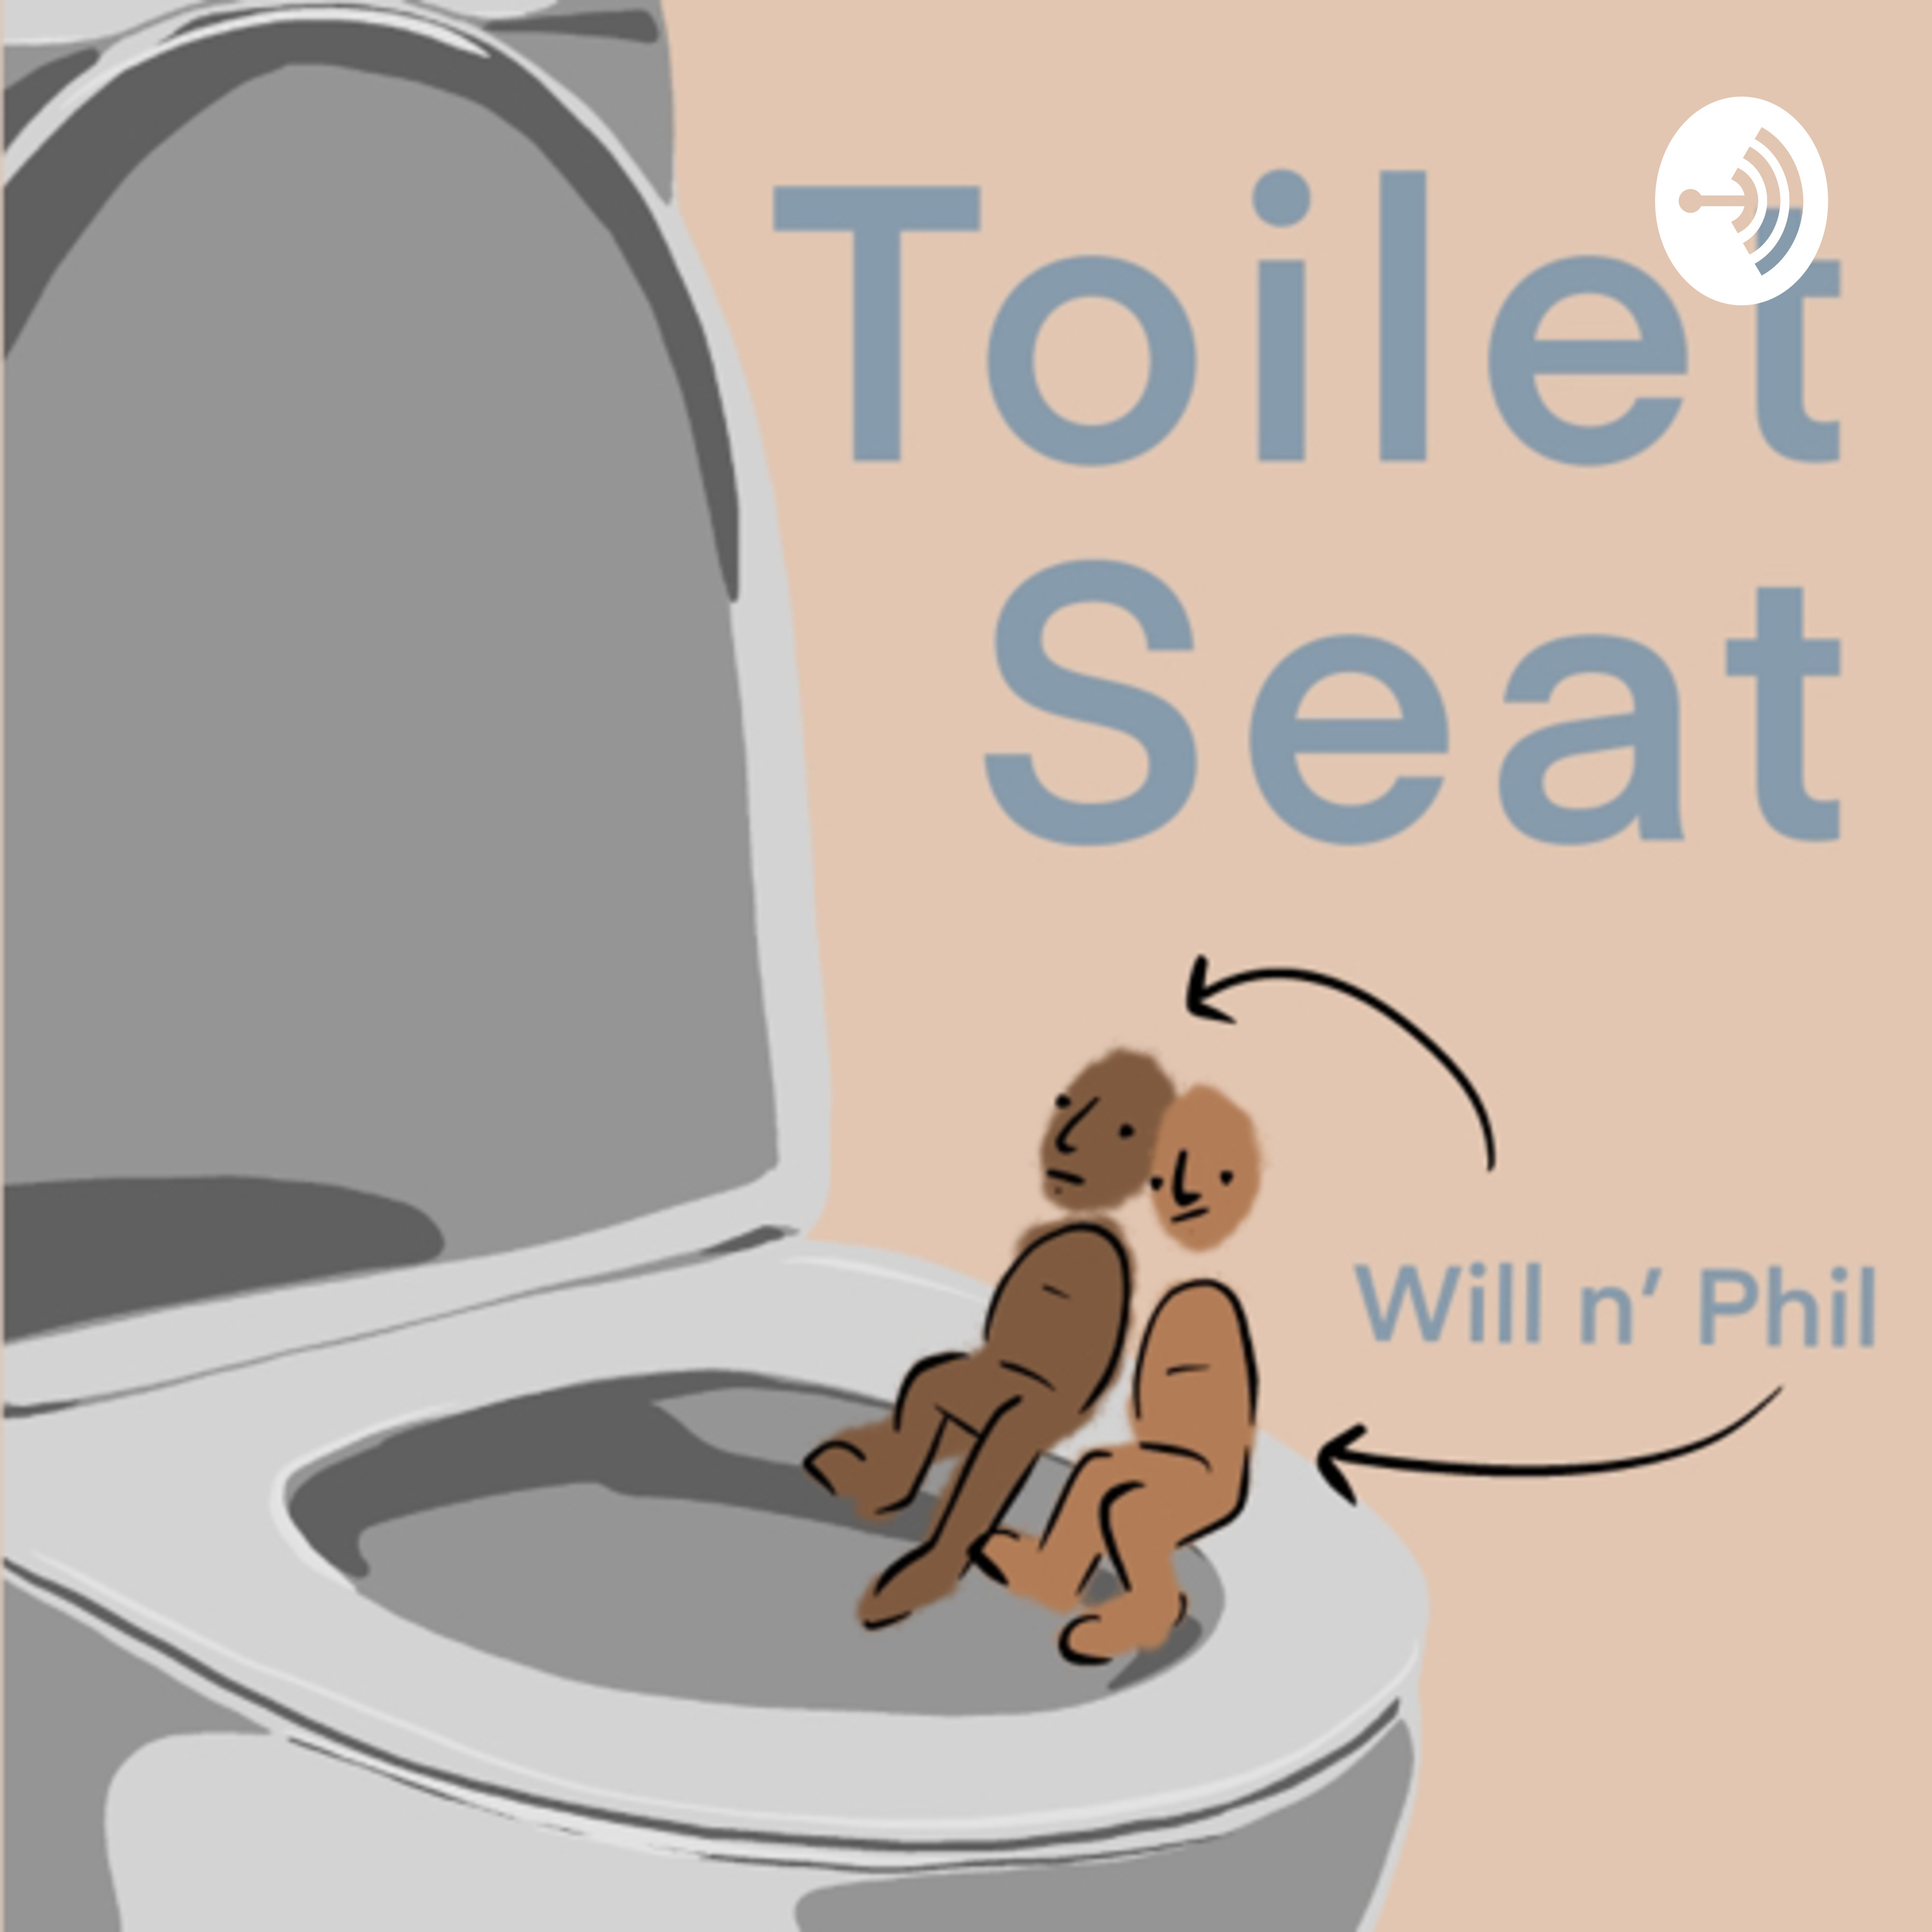 Toilet Seat 2 : we have a name!!!